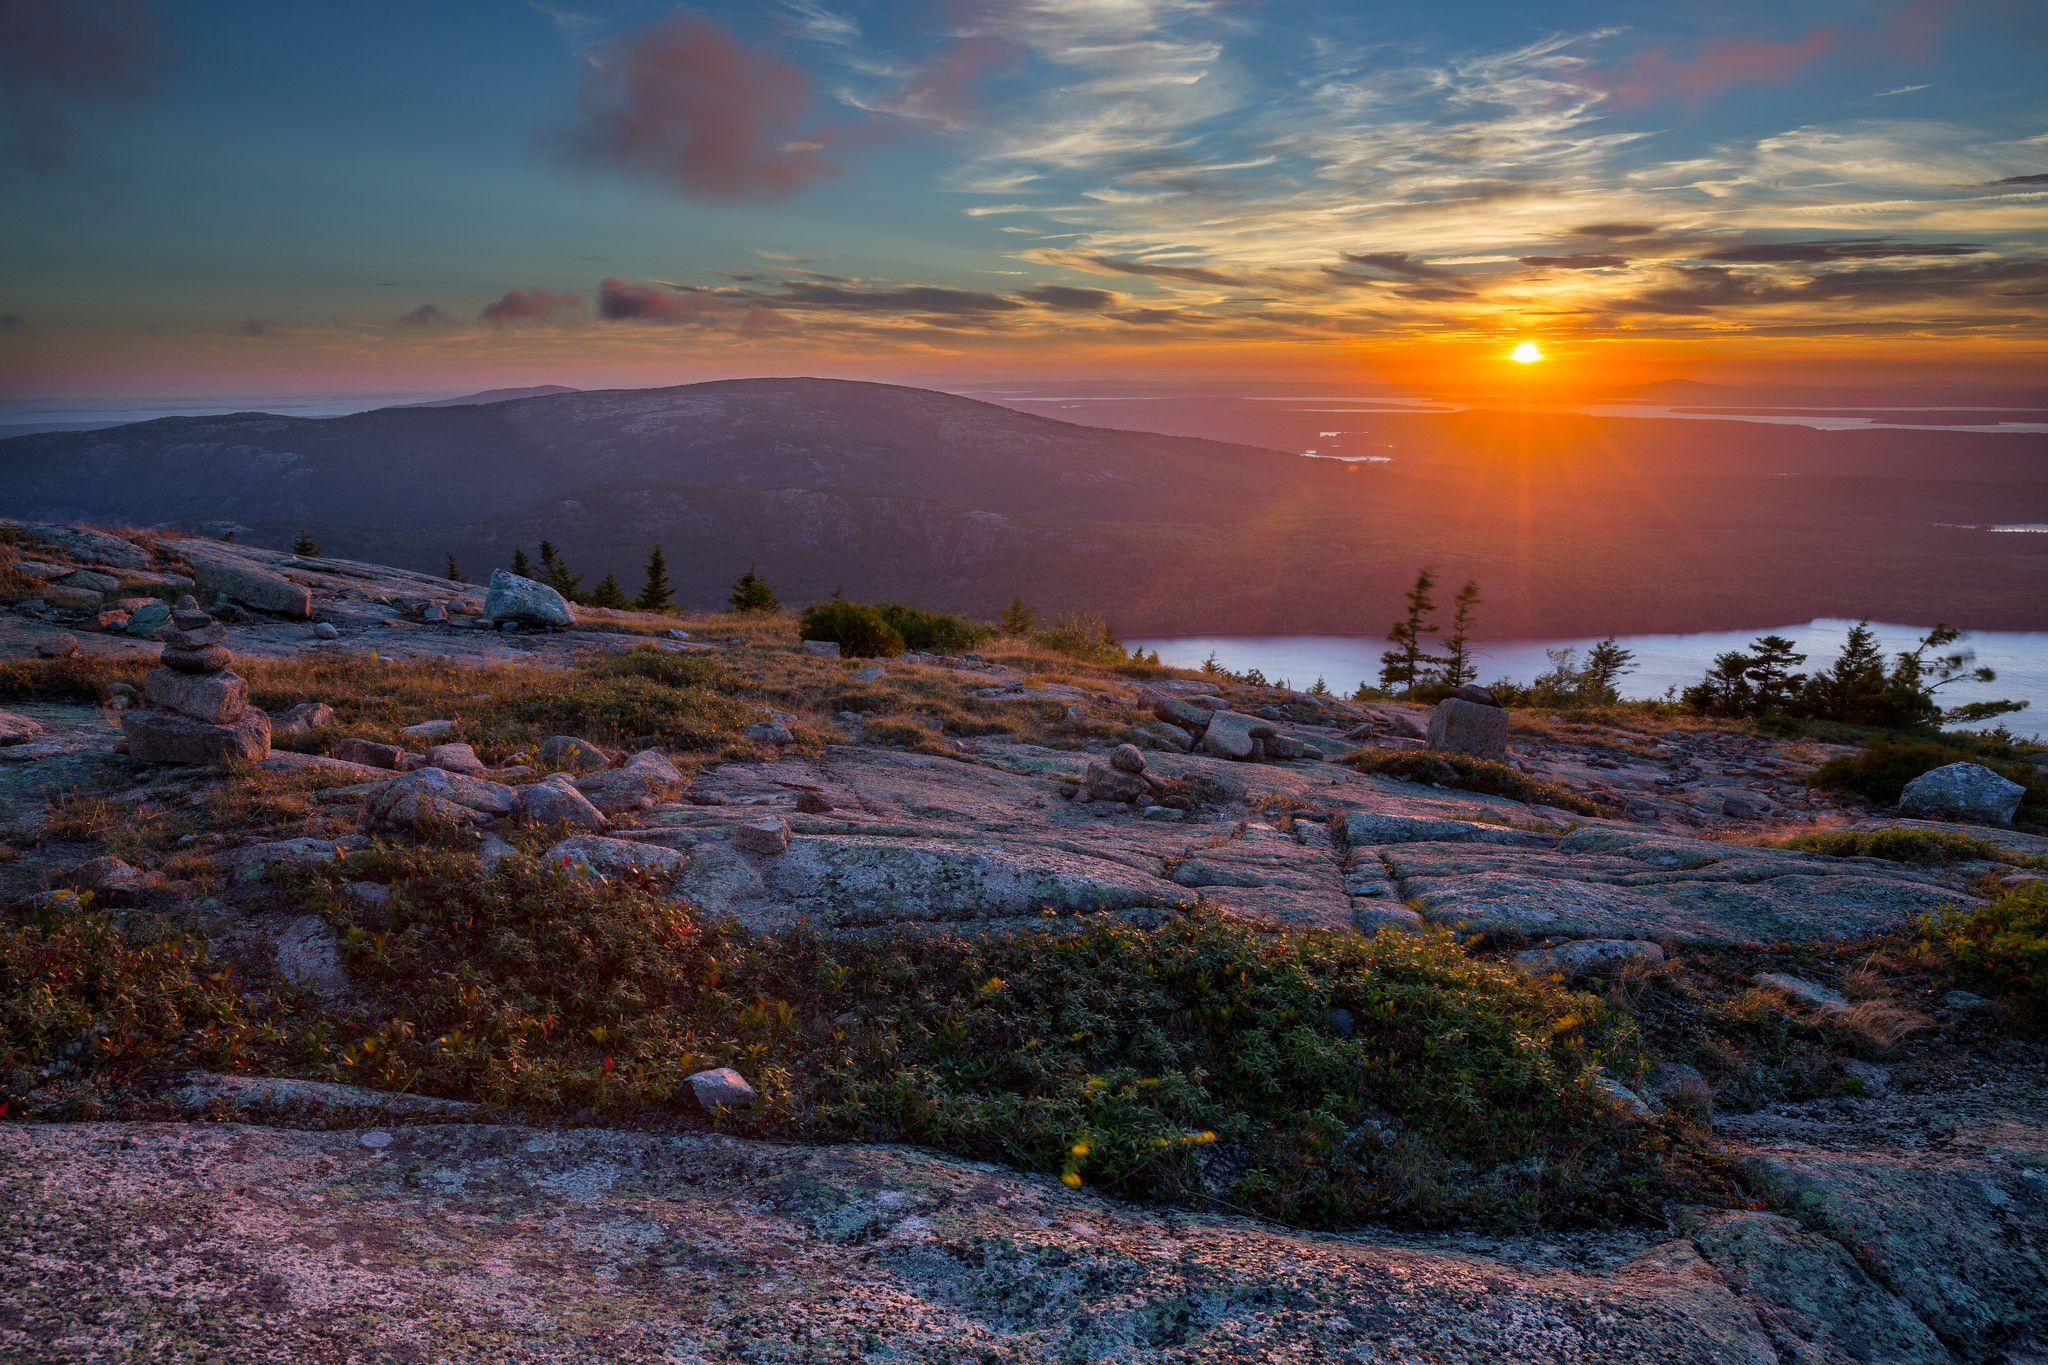 Acadia National Park: 20 Stunning Photos of The Rugged Northeast